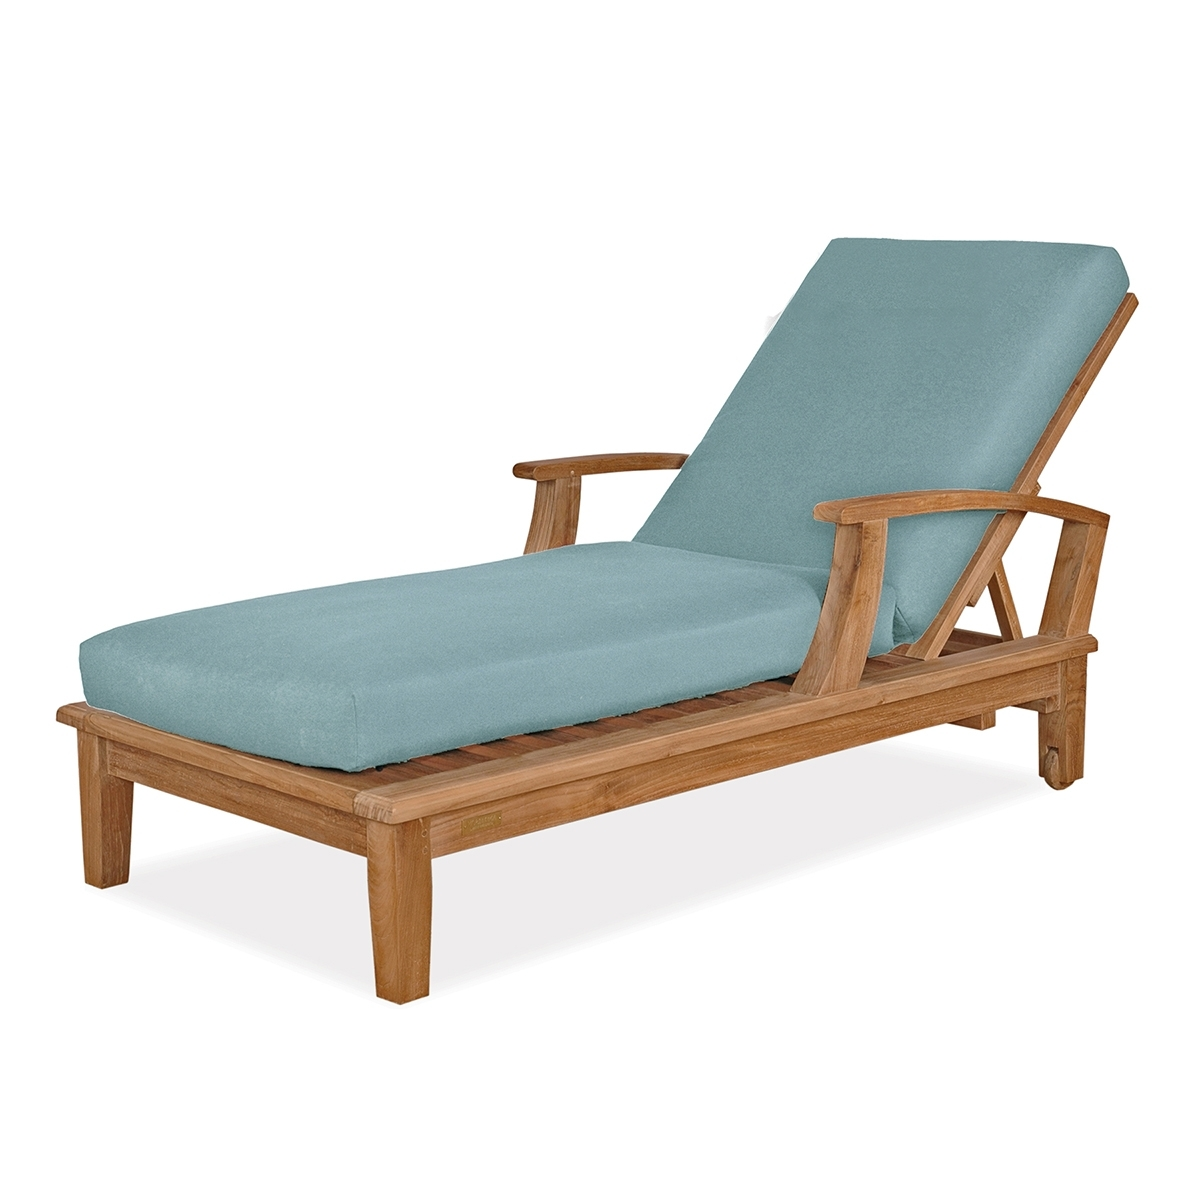 Favorite Chaise Cushion Replacement (View 7 of 15)